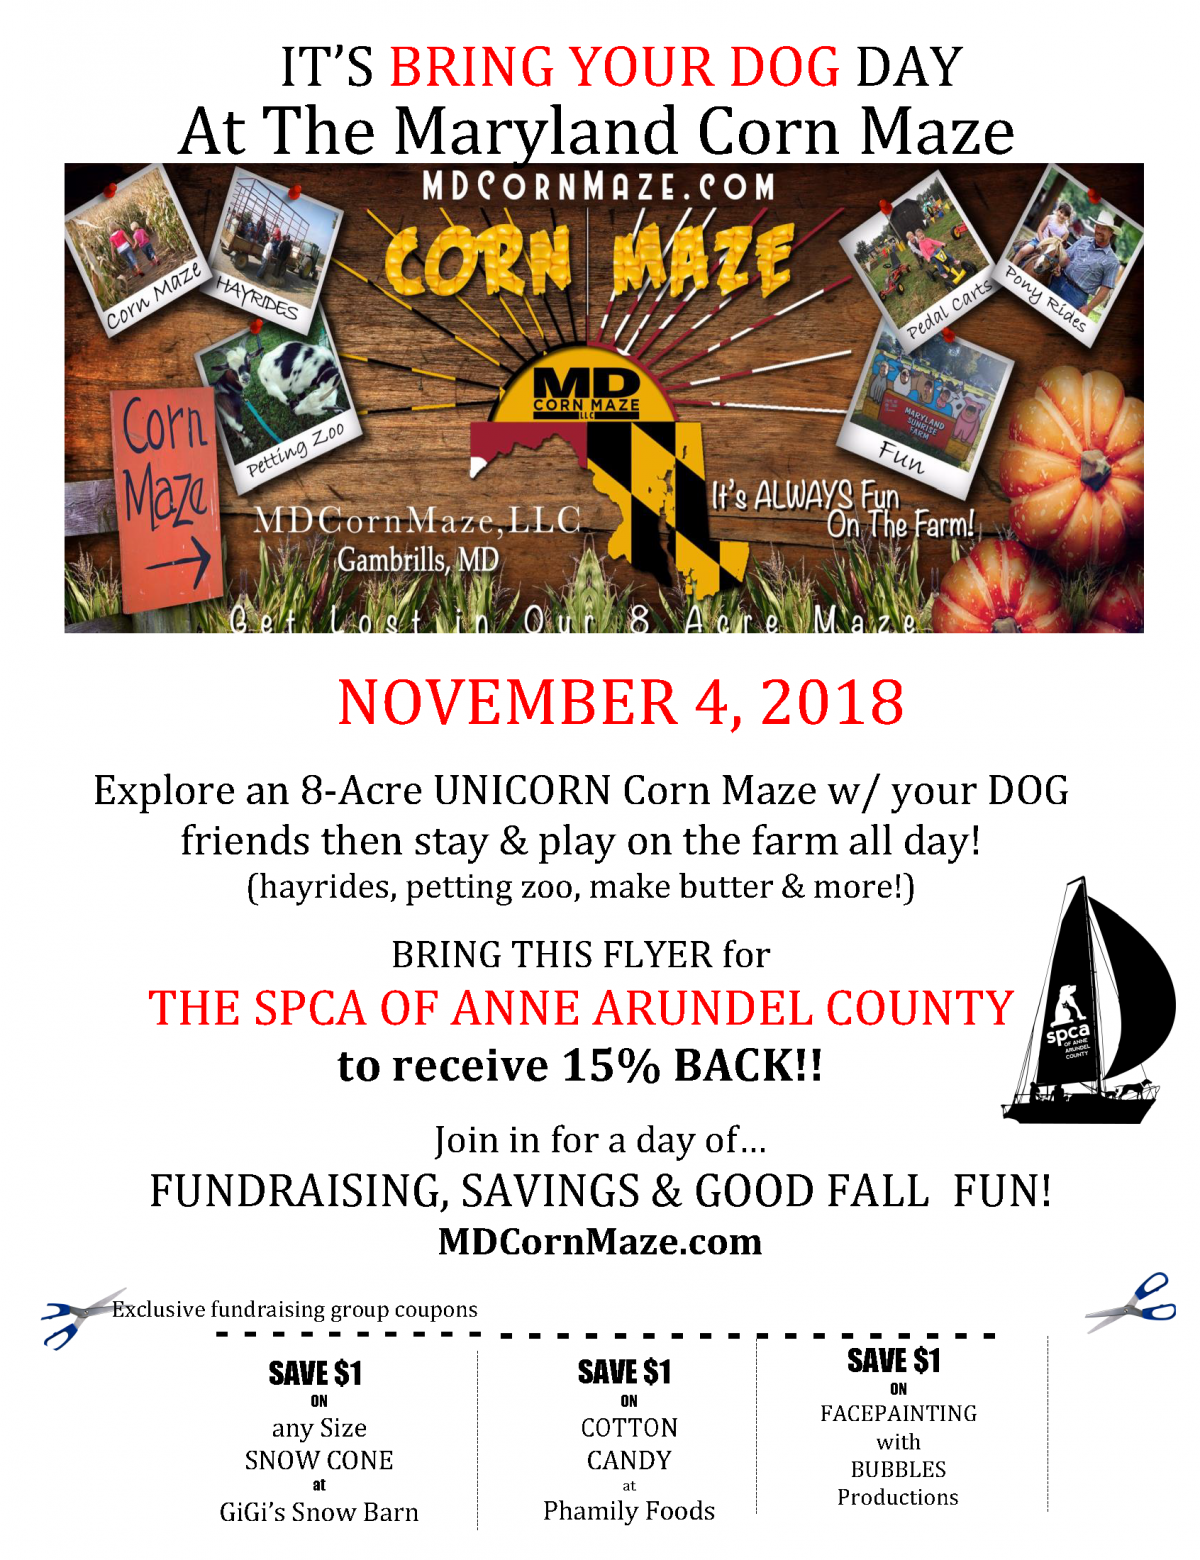 Dog Day @ MD Corn Maze – 11/4